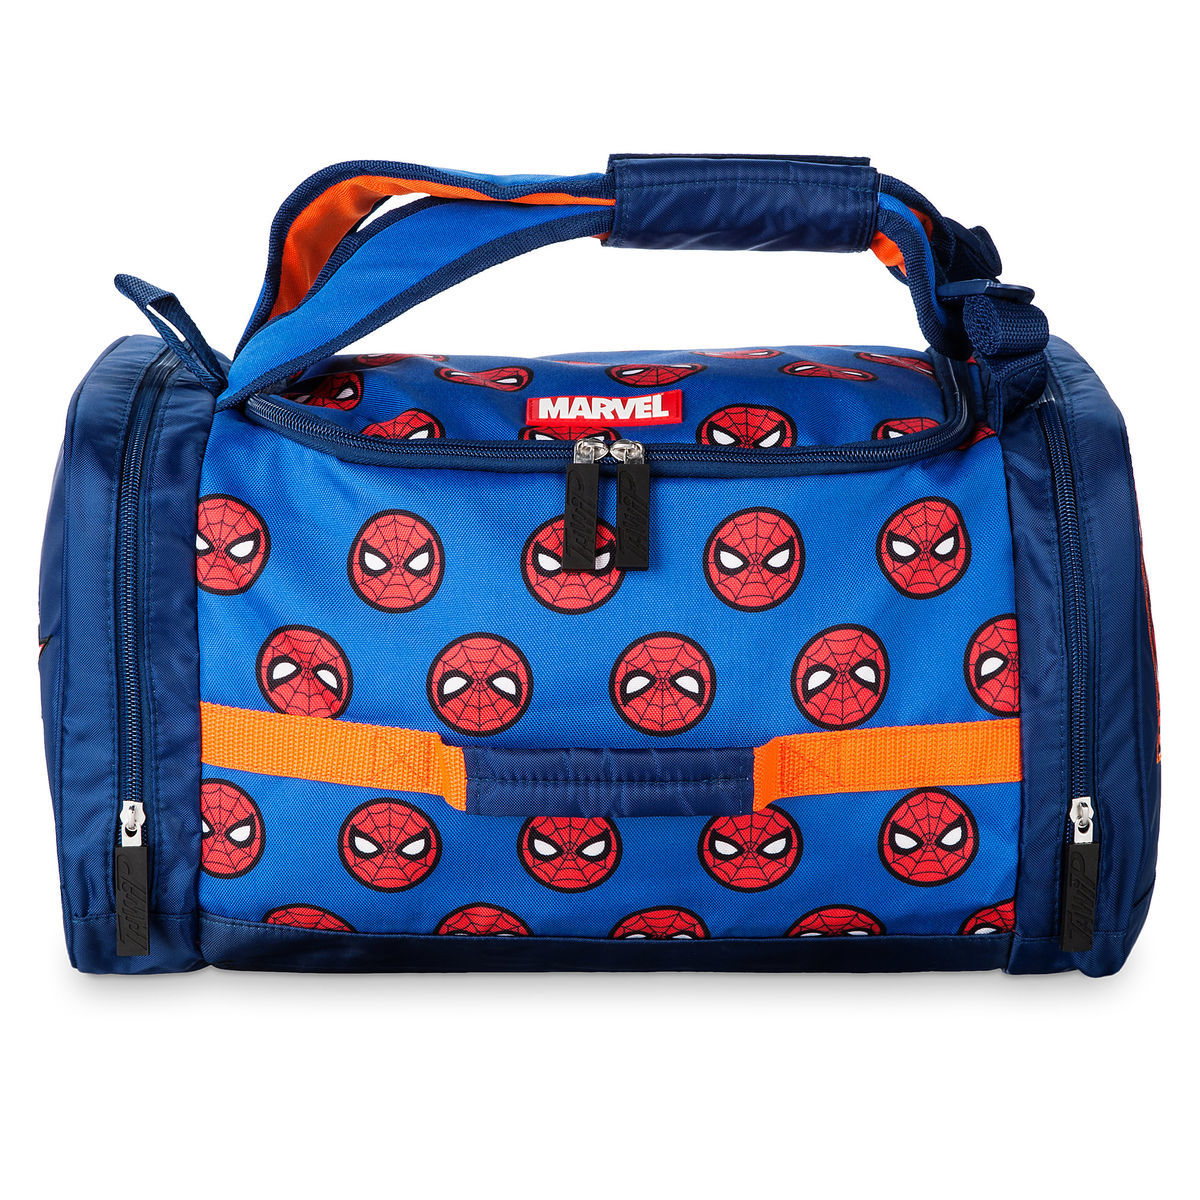 Product Image of Spider-Man Duffle Bag for Kids   1 ef12f0a8d64db